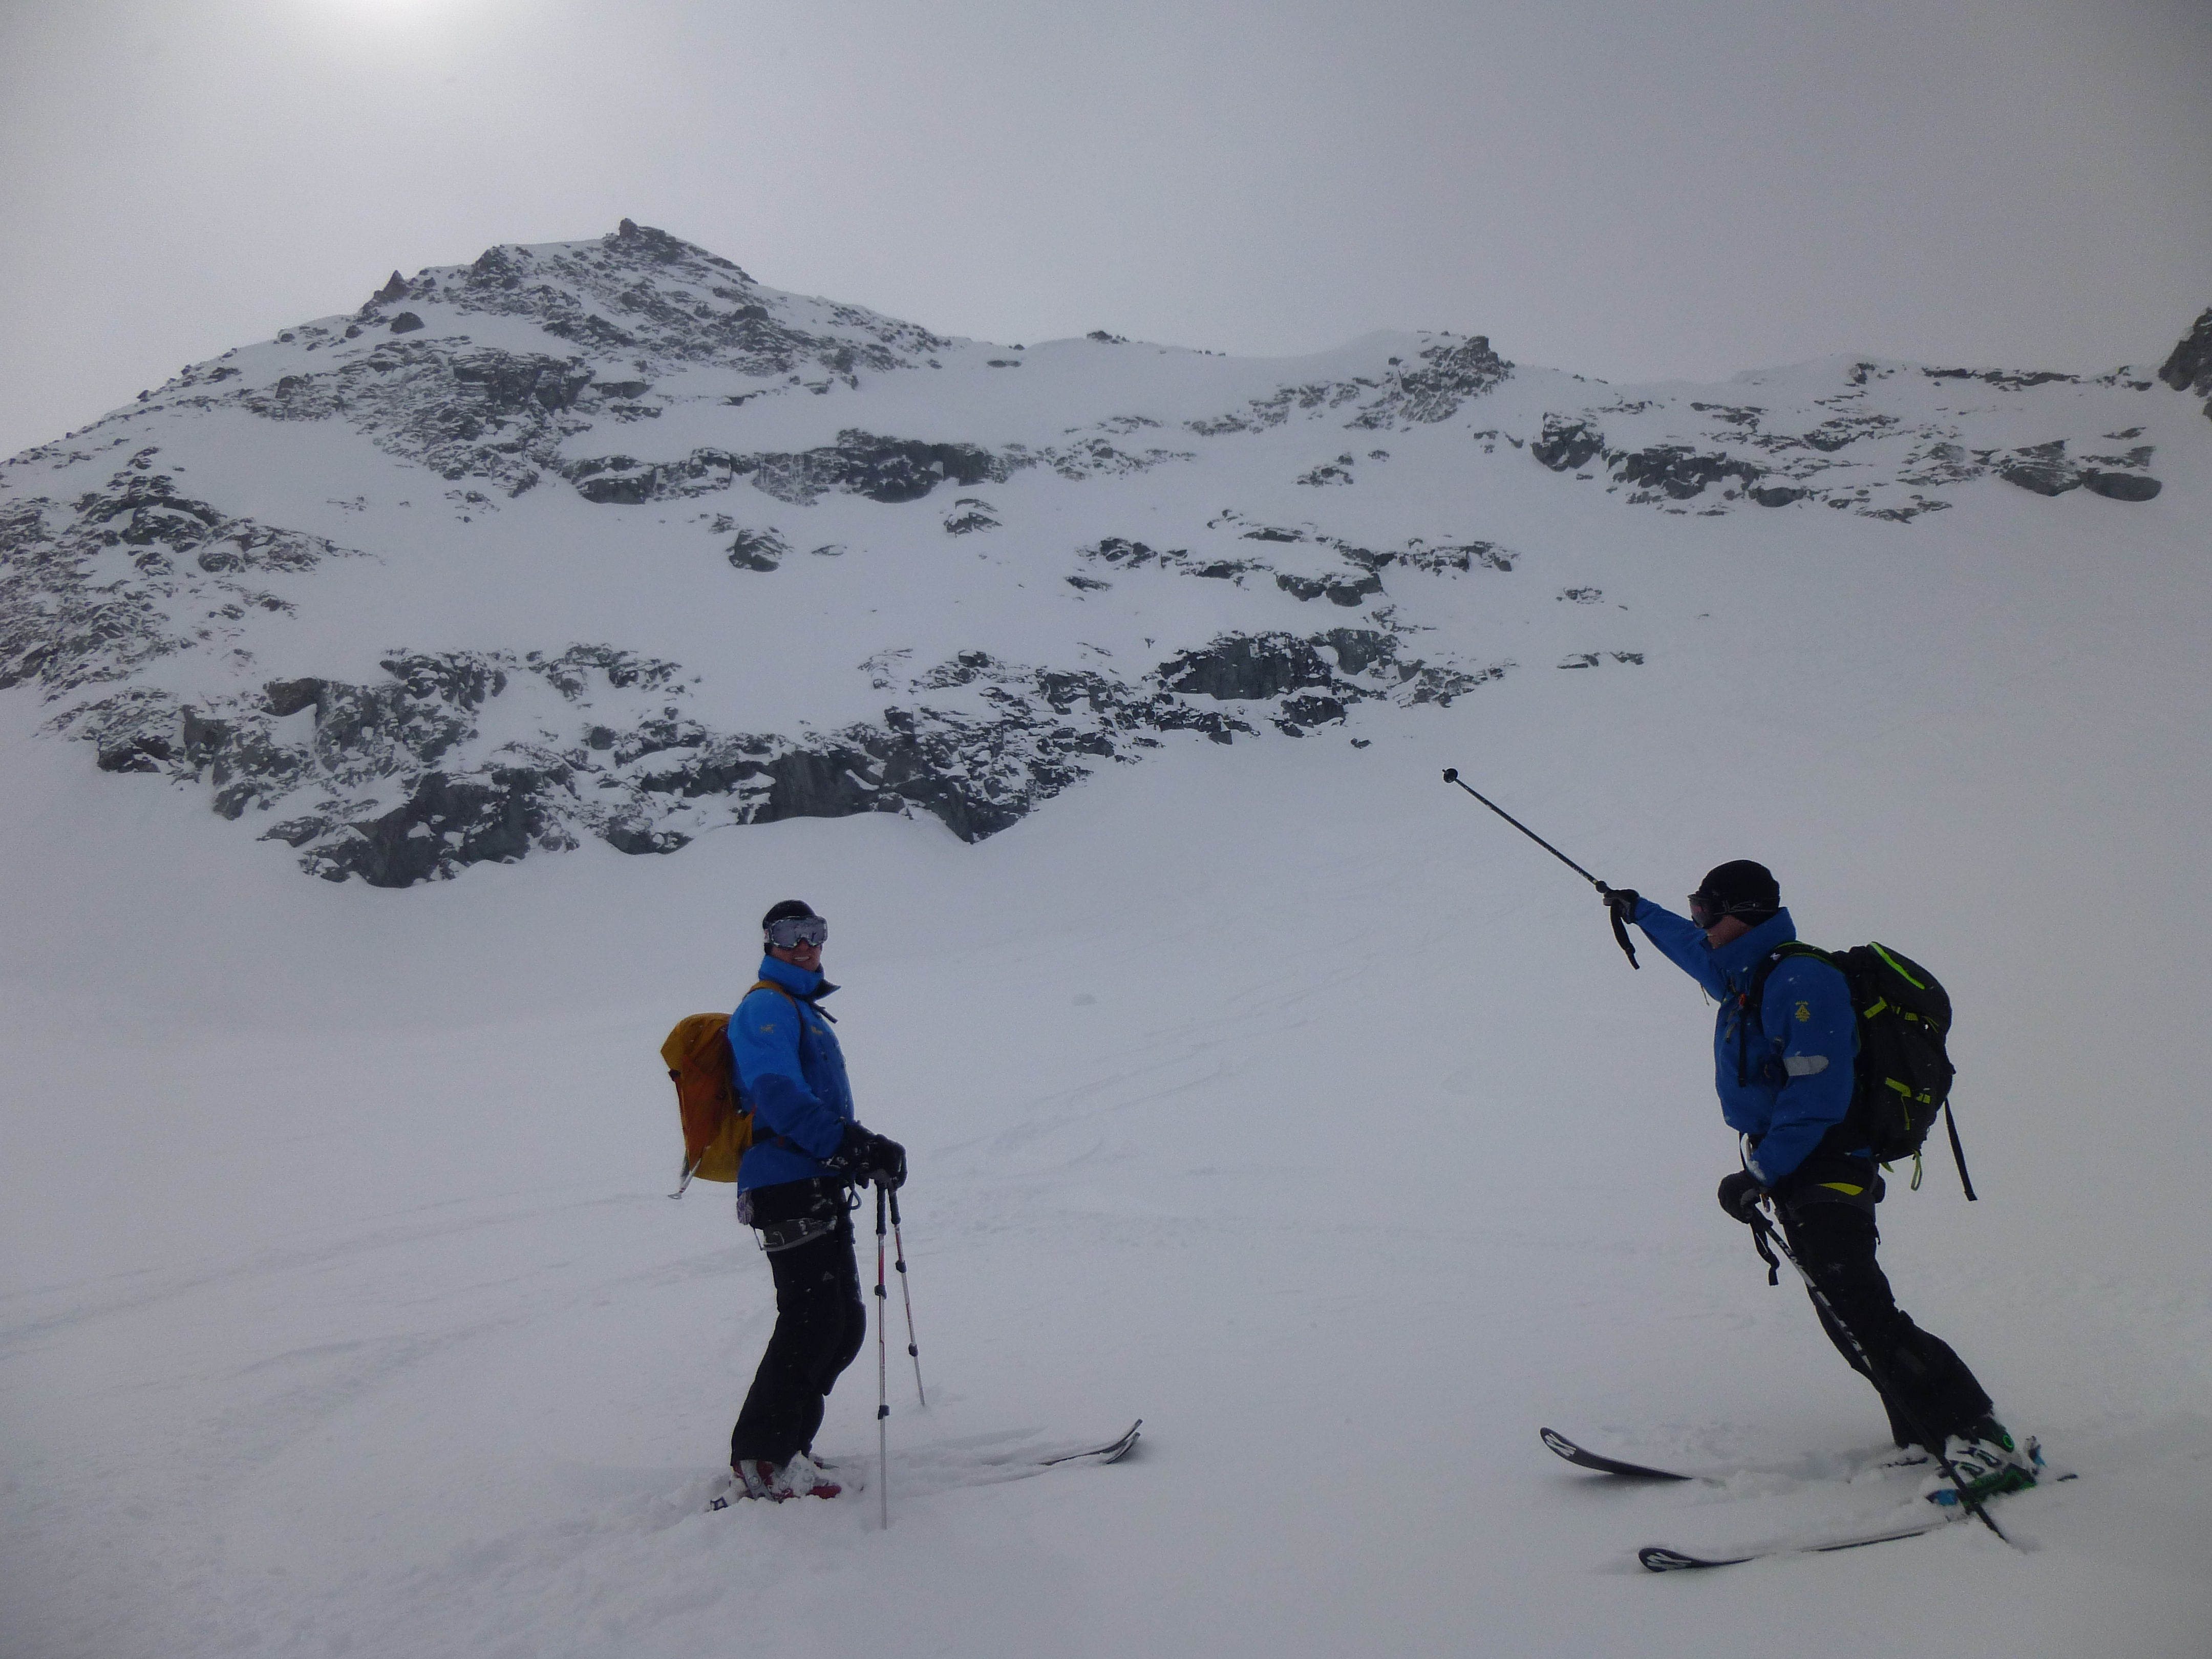 Off-piste day in Verbier, below the face we just skied in great snow.